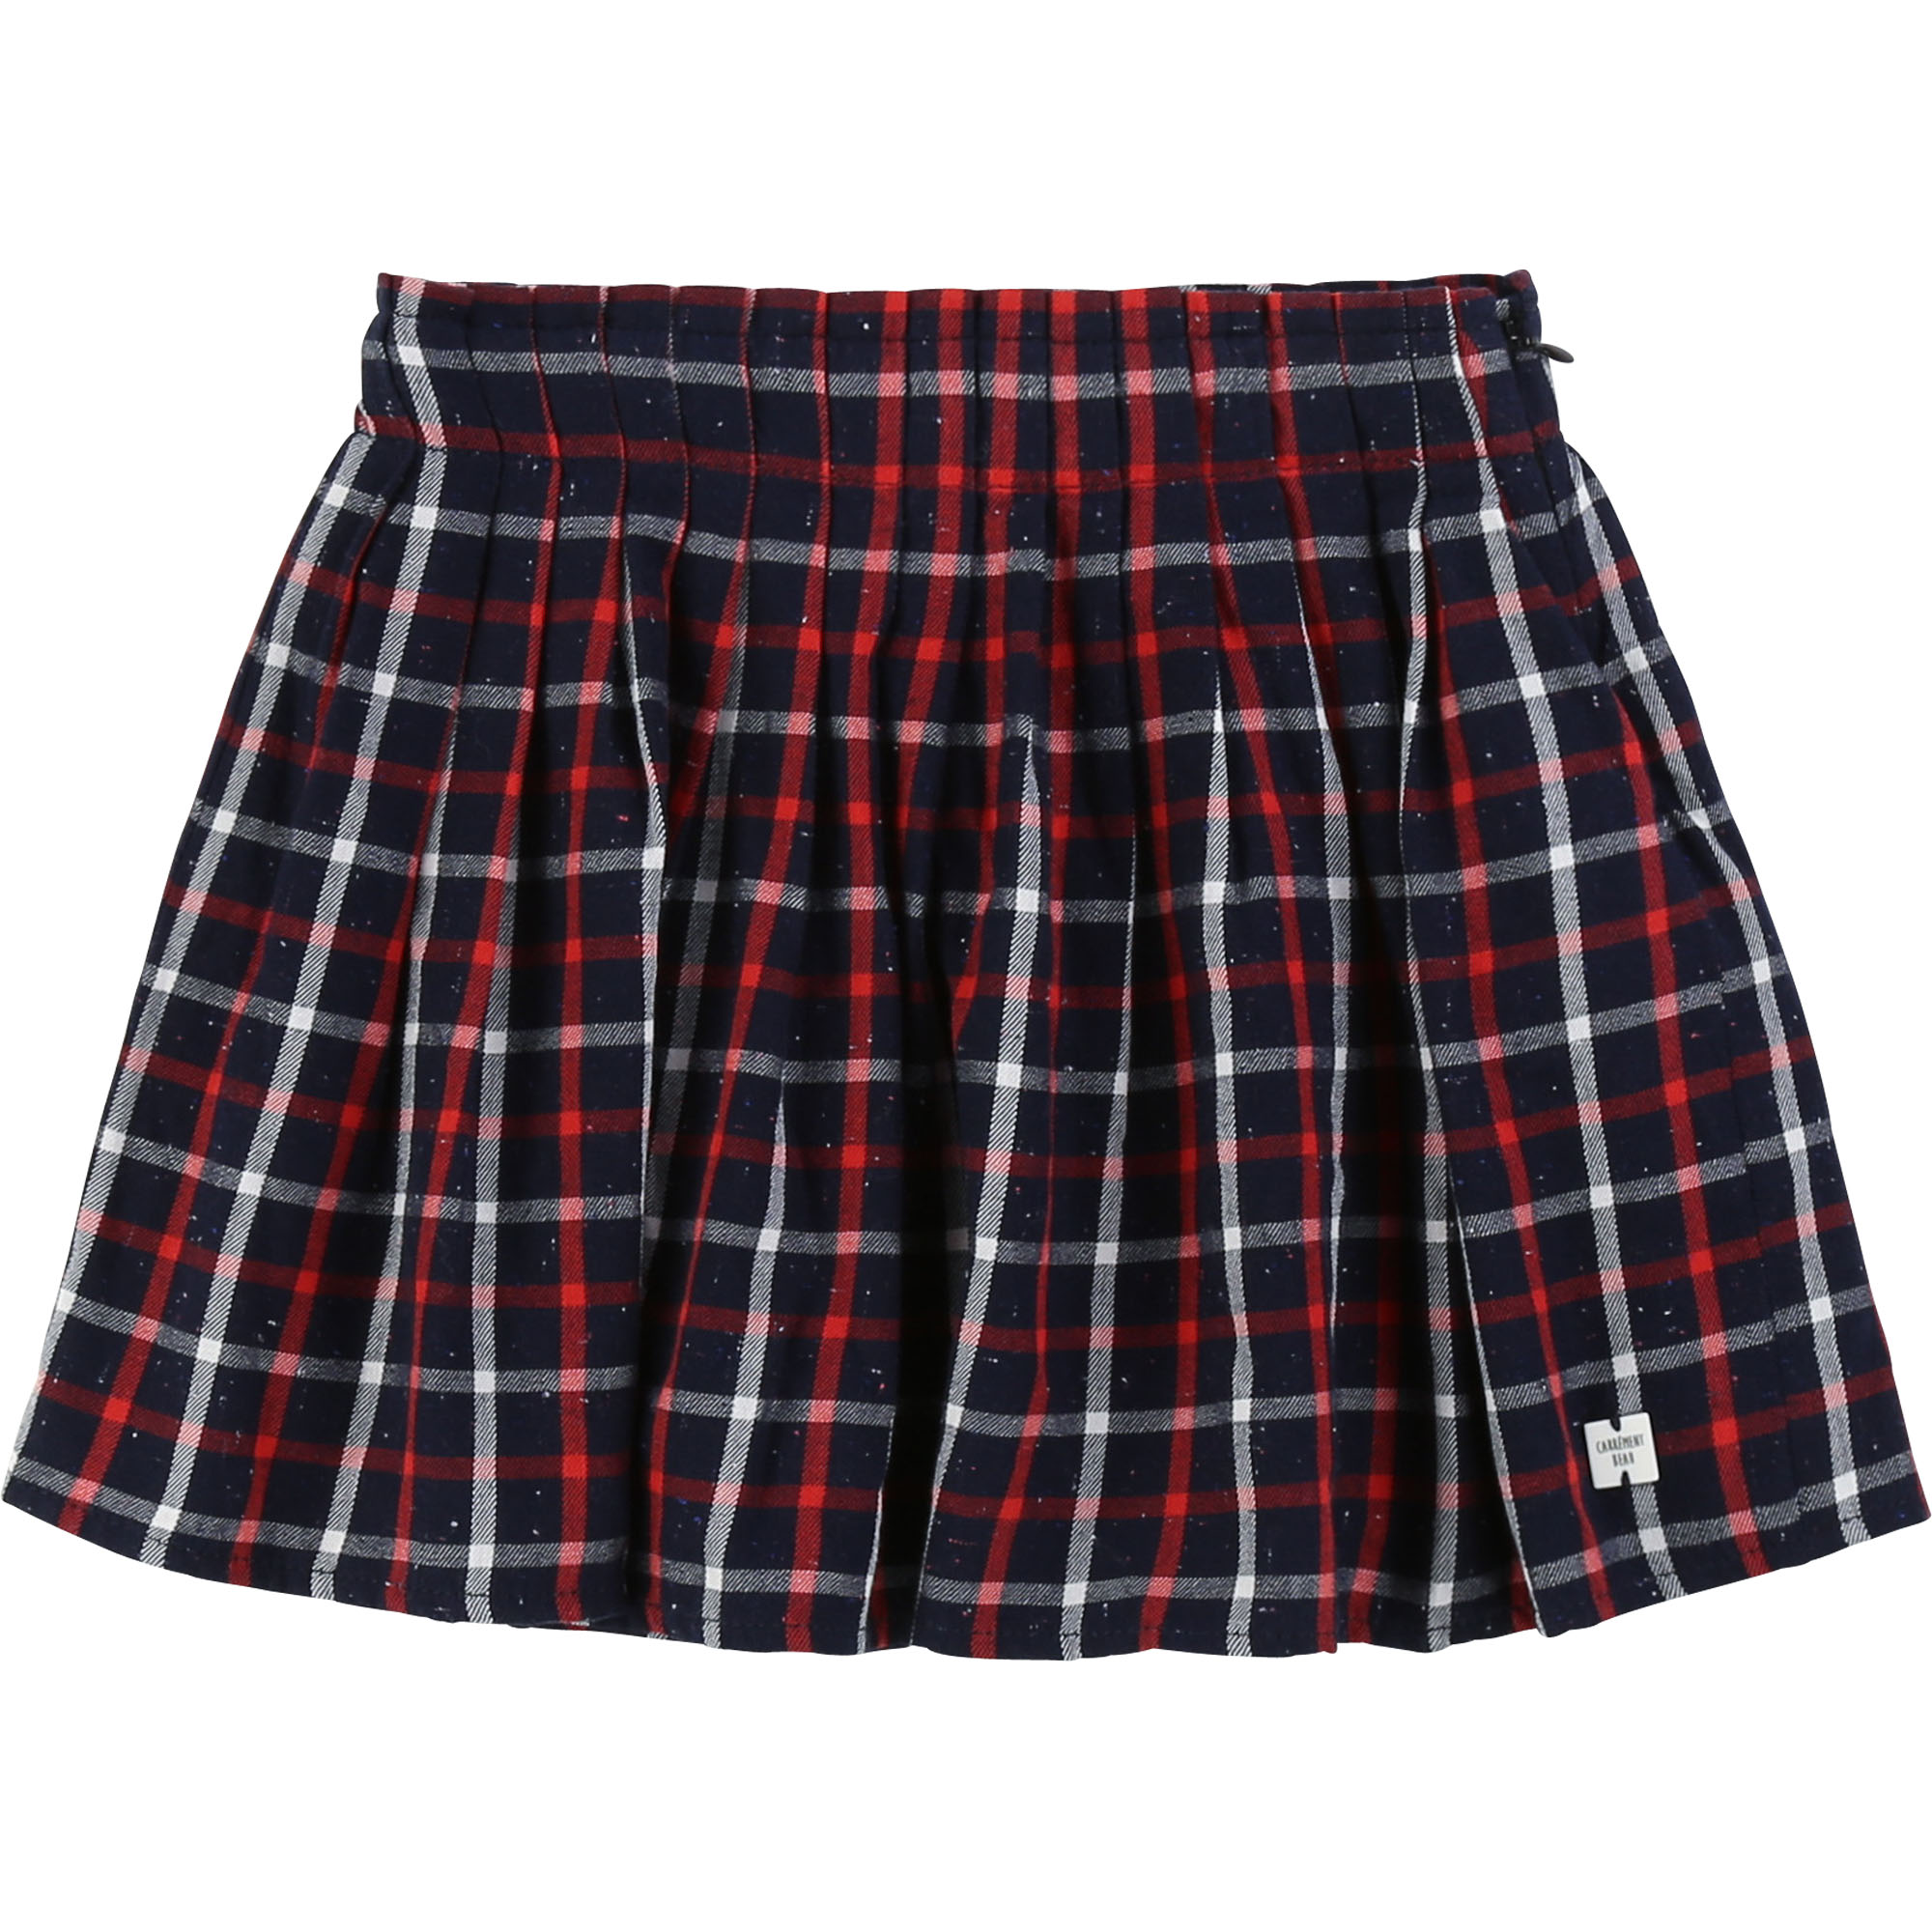 SKIRT CARREMENT BEAU for GIRL